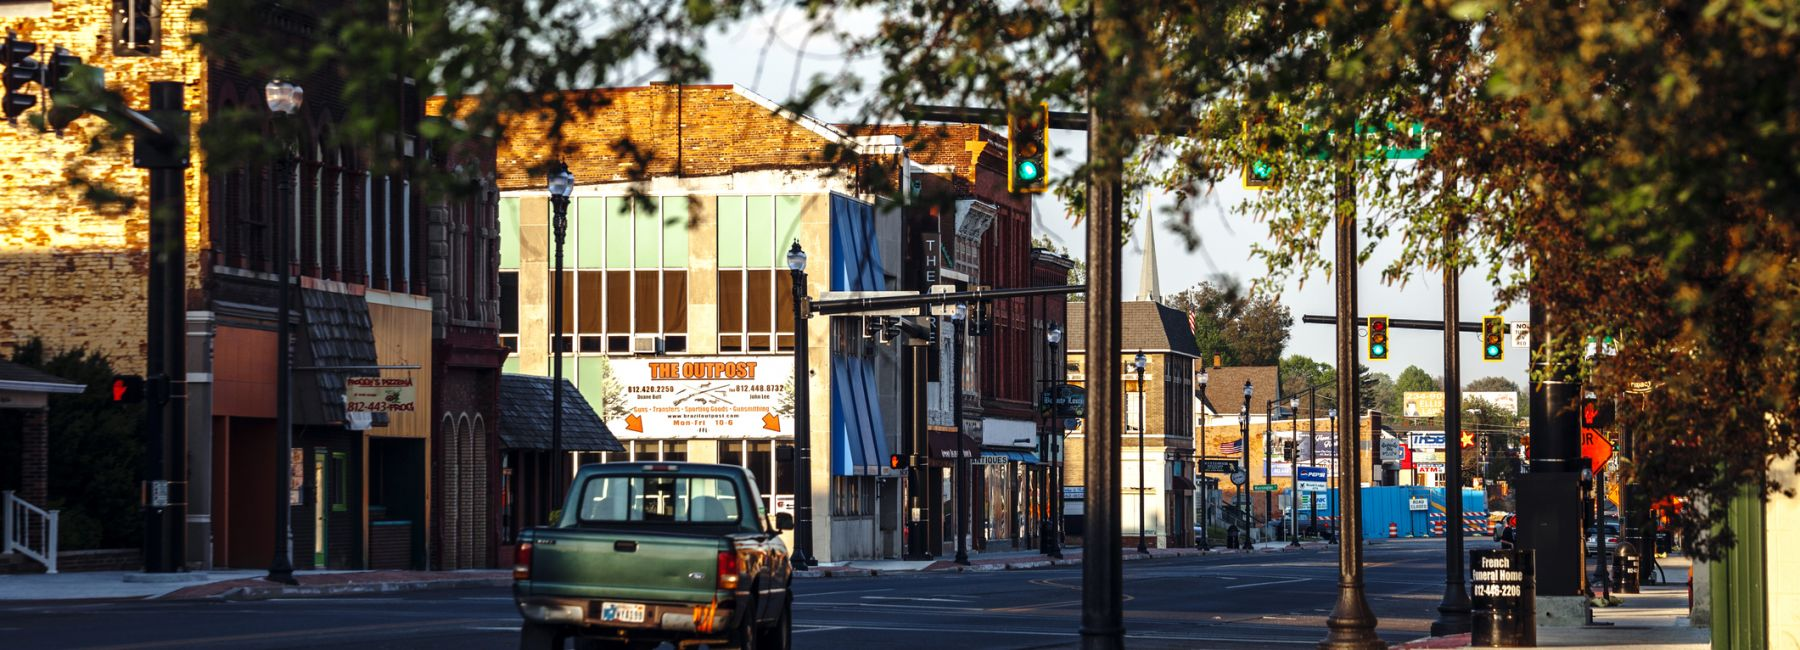 Norther Indiana Downtown - Terre Haute, Indiana